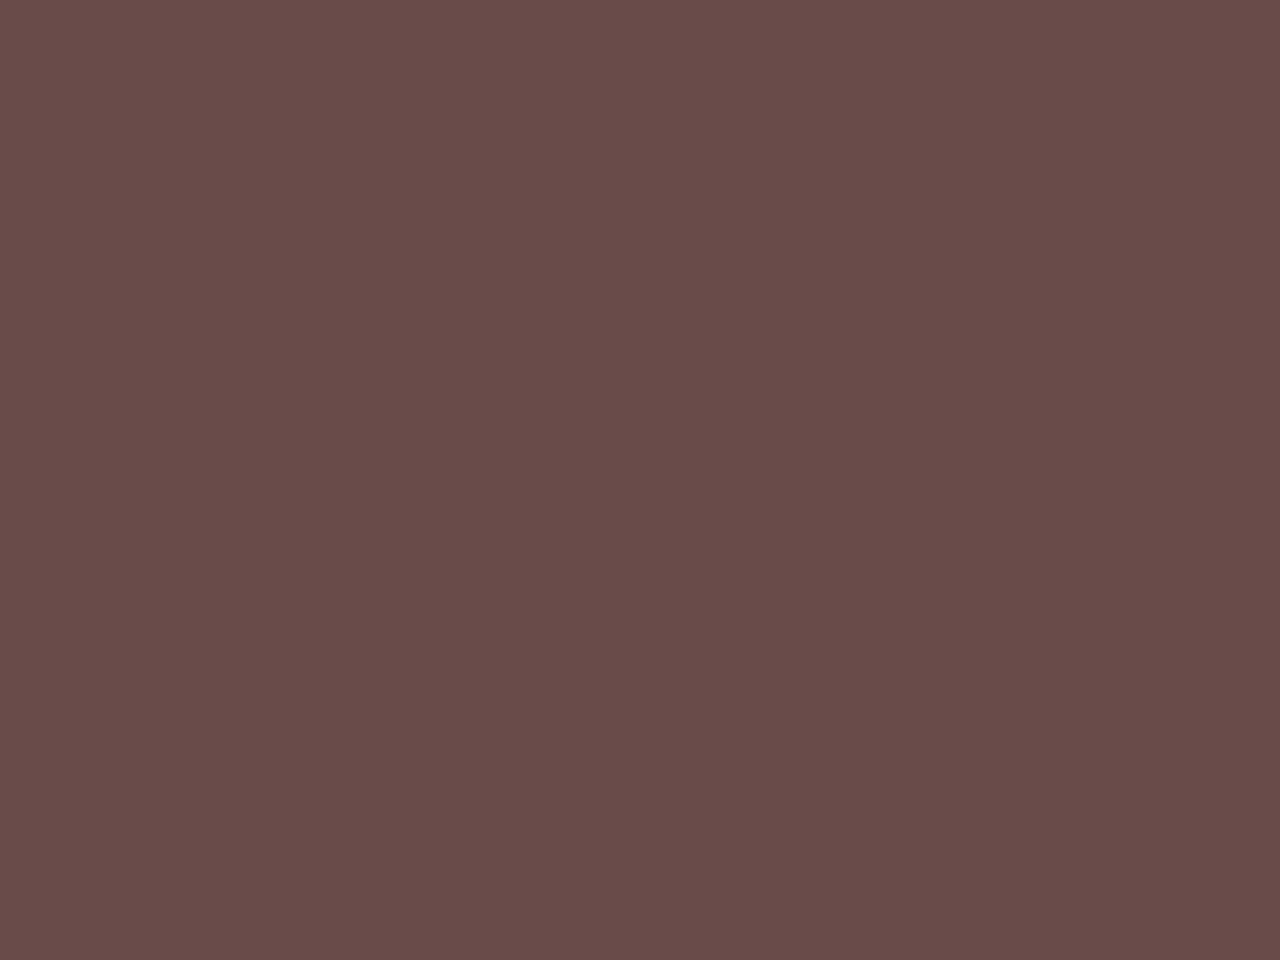 1280x960 Medium Taupe Solid Color Background